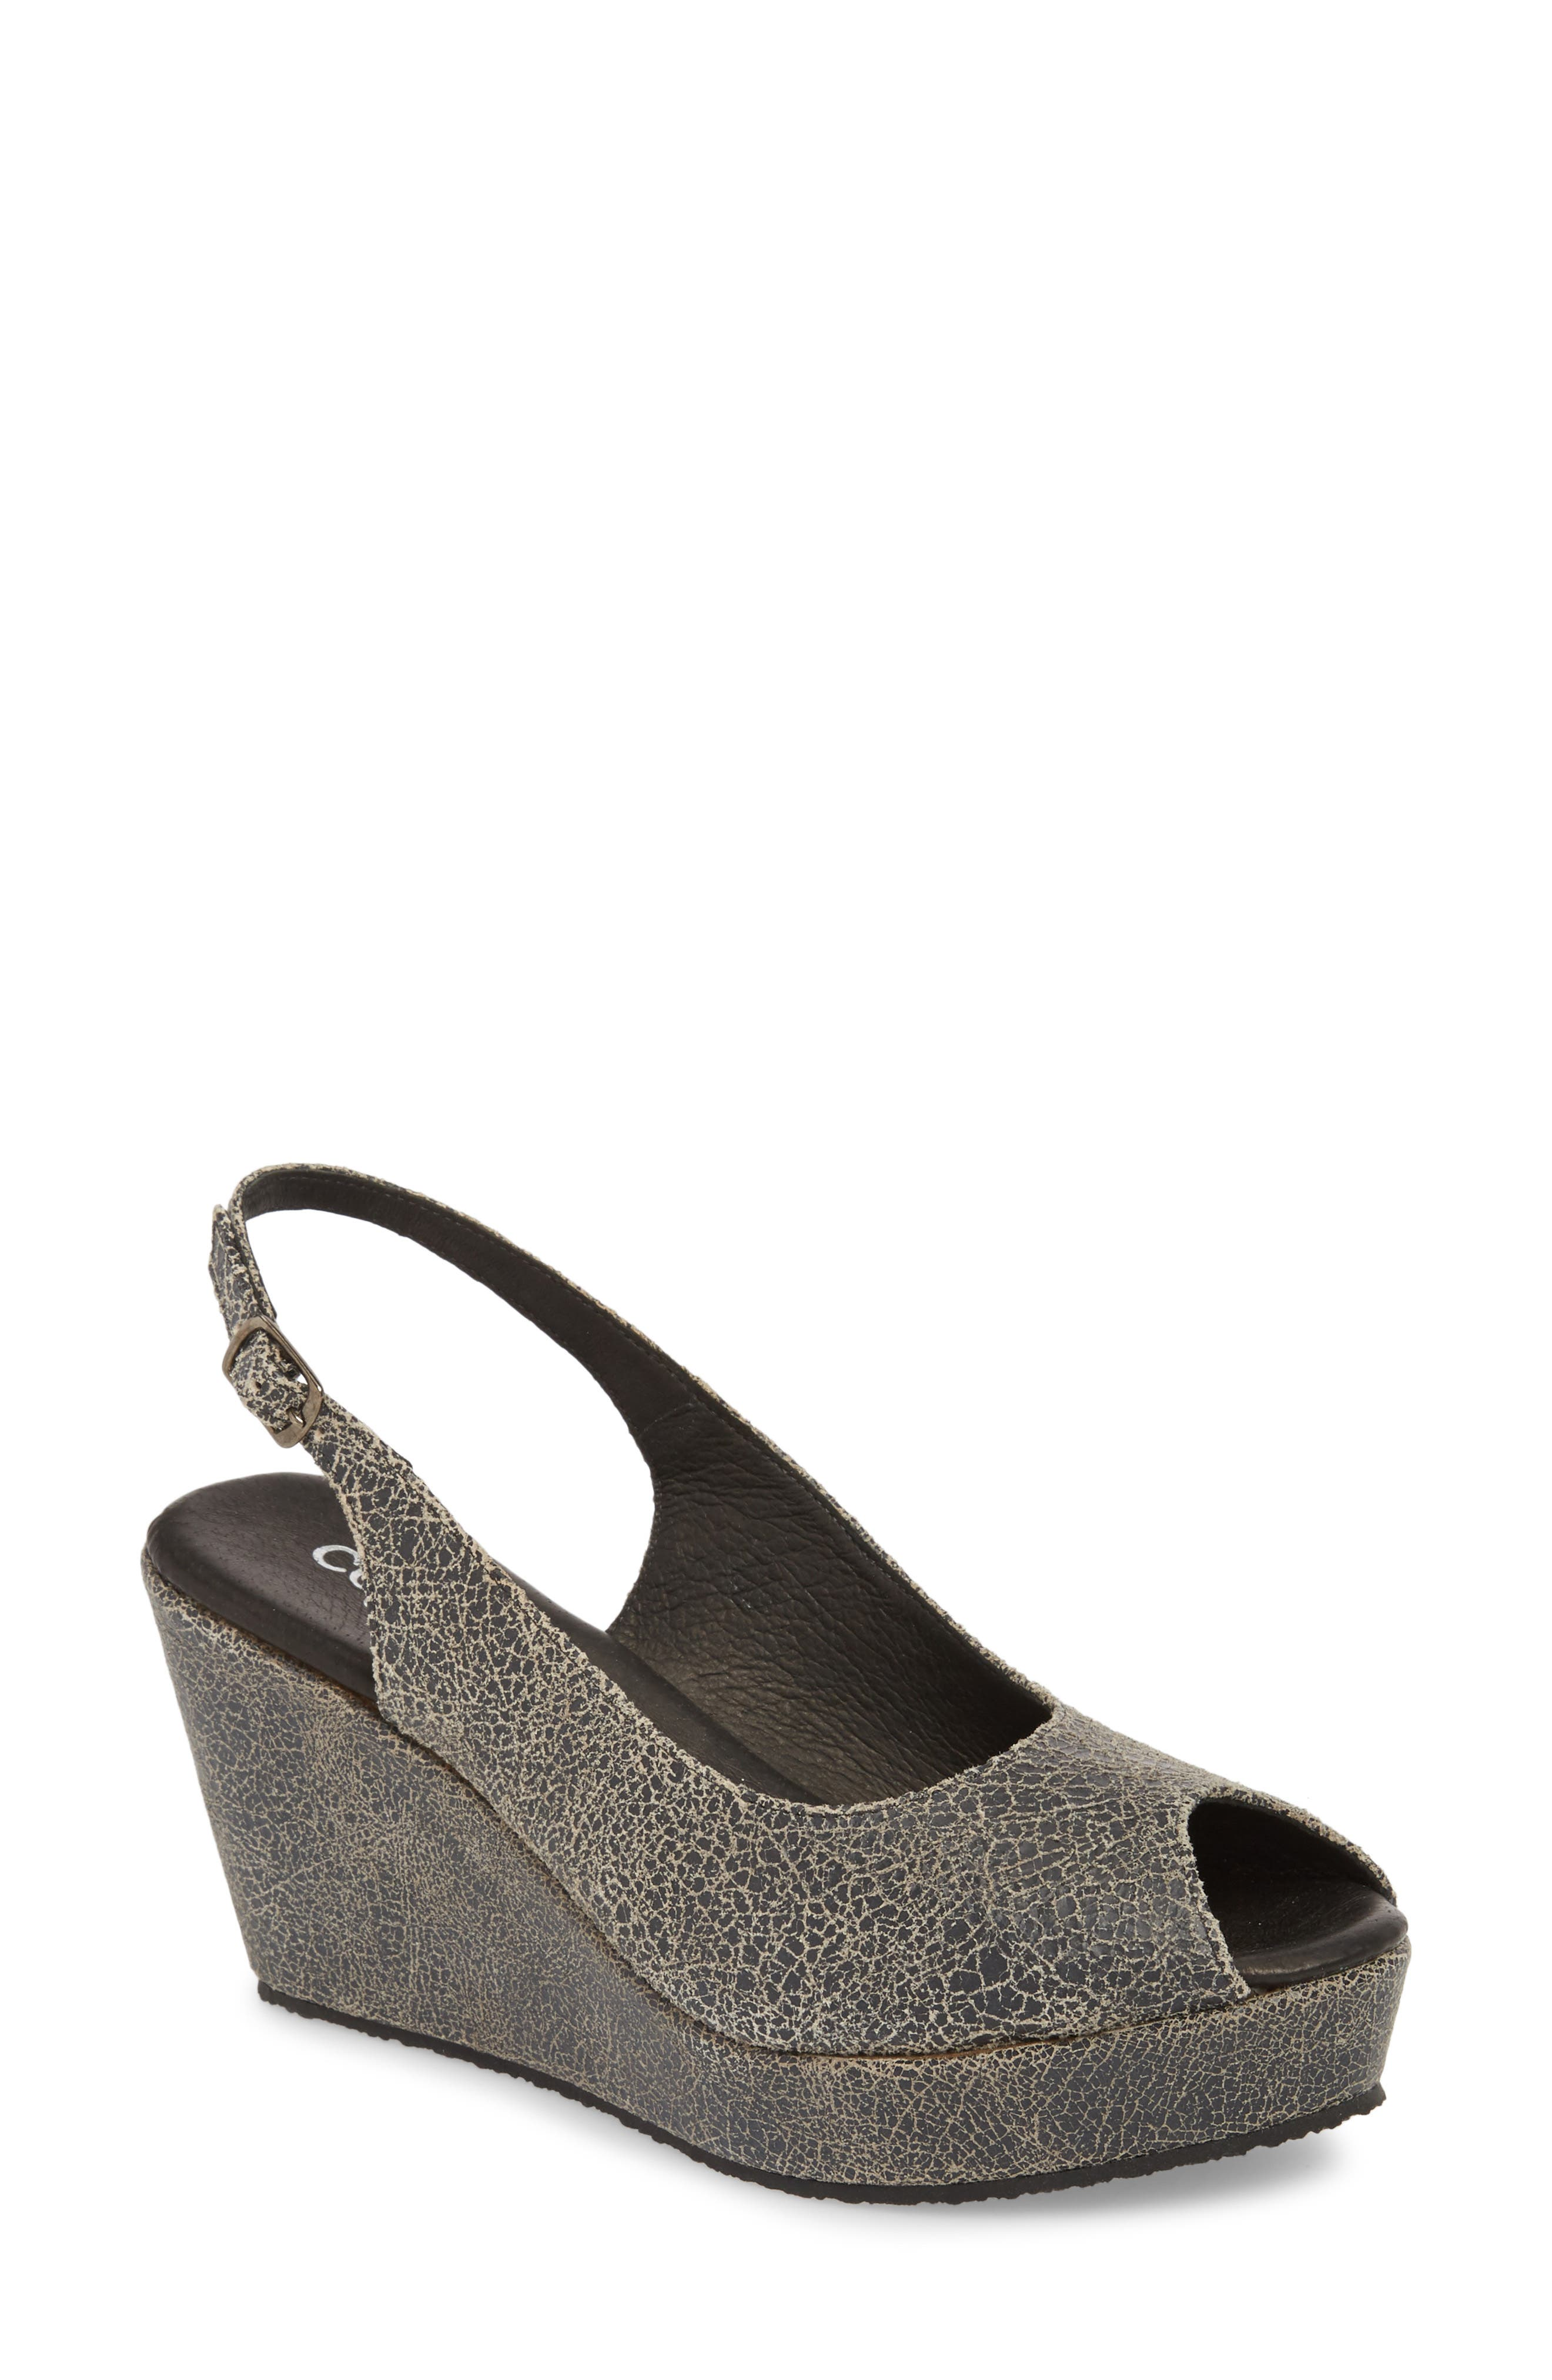 Fabrice Slingback Platform Sandal,                         Main,                         color, GREY CRACKLE LEATHER